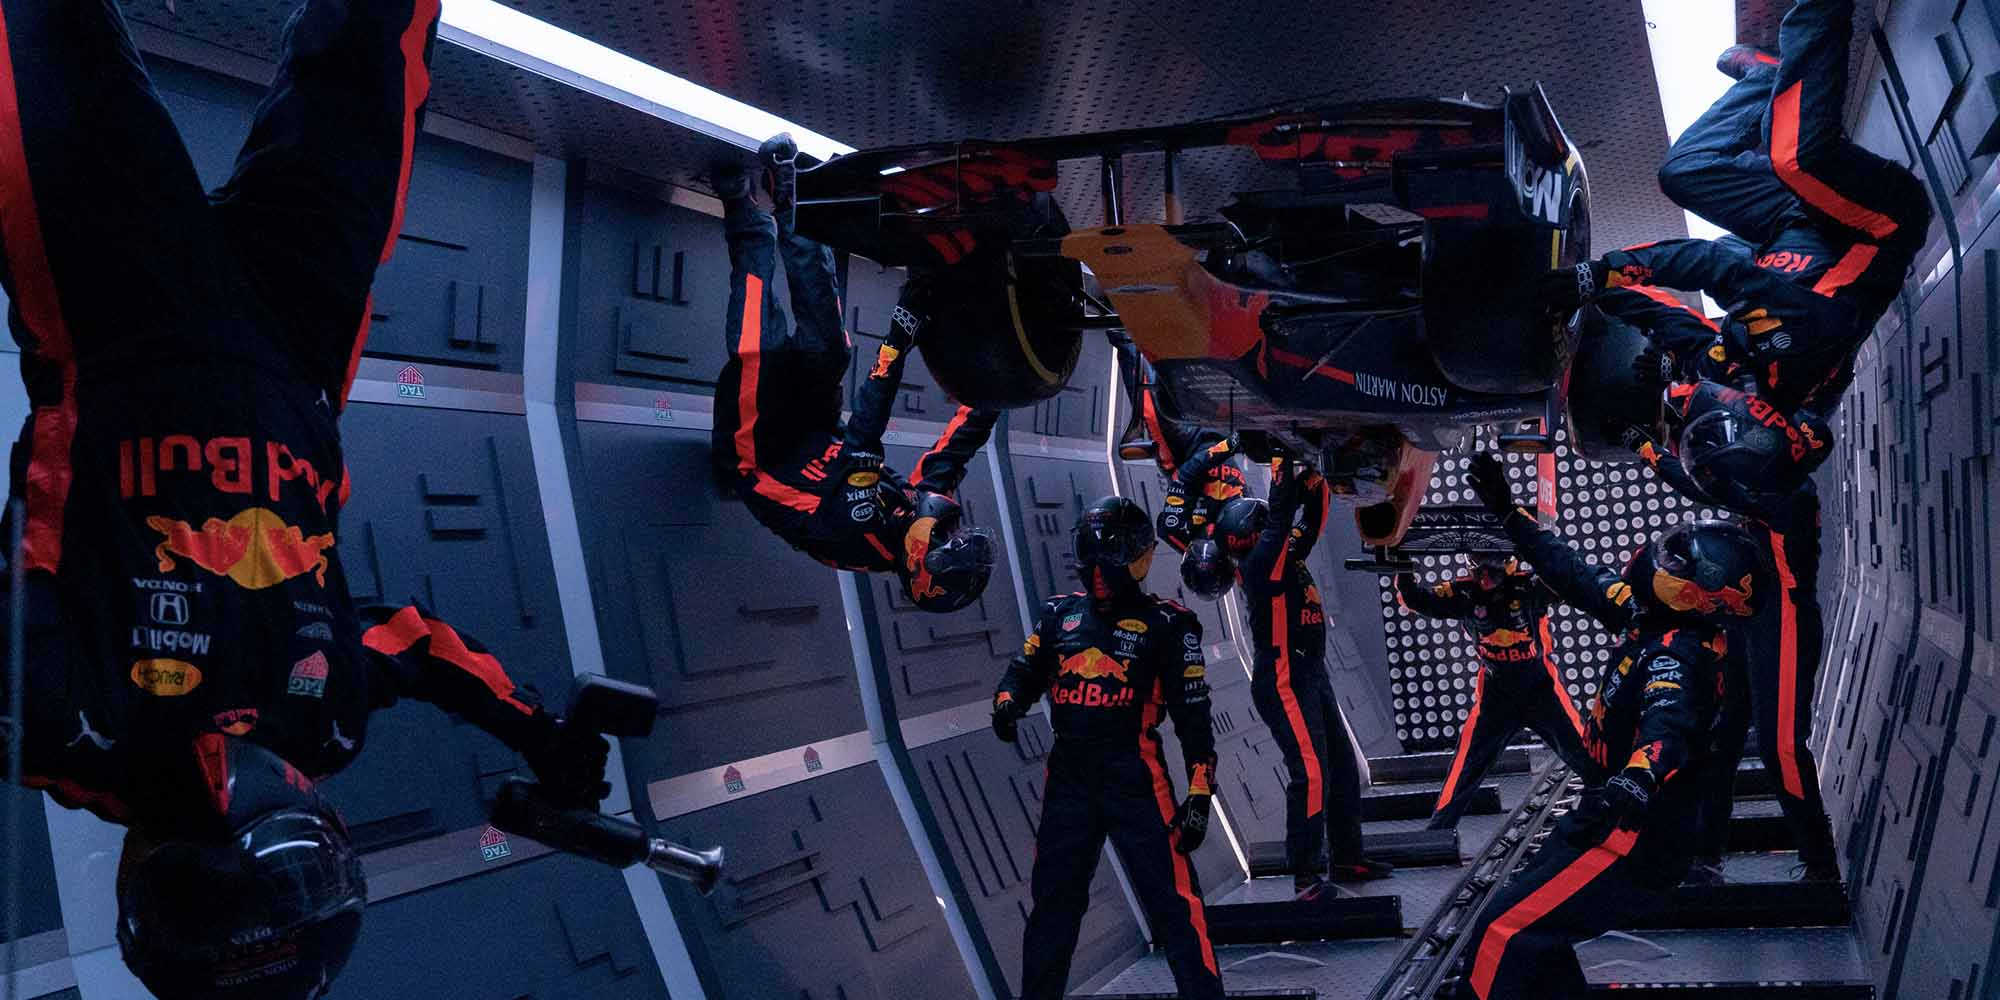 Video: Red Bull's Formula 1 pit stop in zero gravity